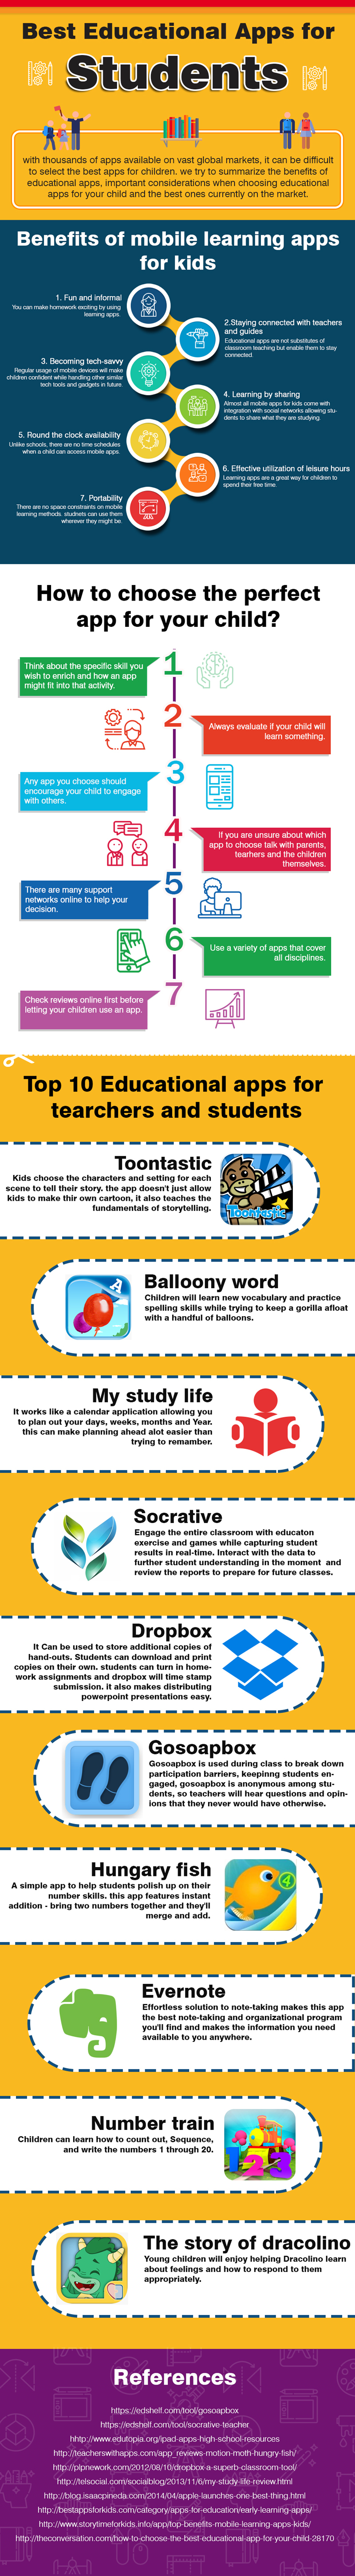 Best Mobile Apps For Students [Infographic]